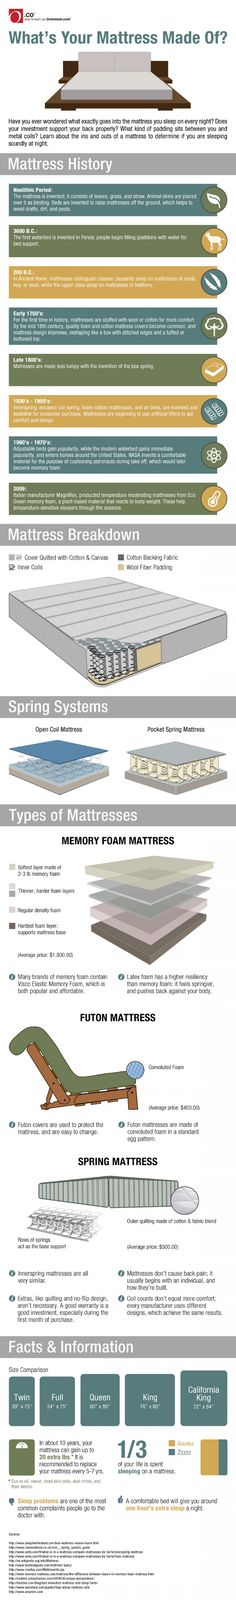 Best Bed For Bad Back - coralview plush california king mattress  w/foundation  main. how to build raised garden beds: tips for raised bed  gardening